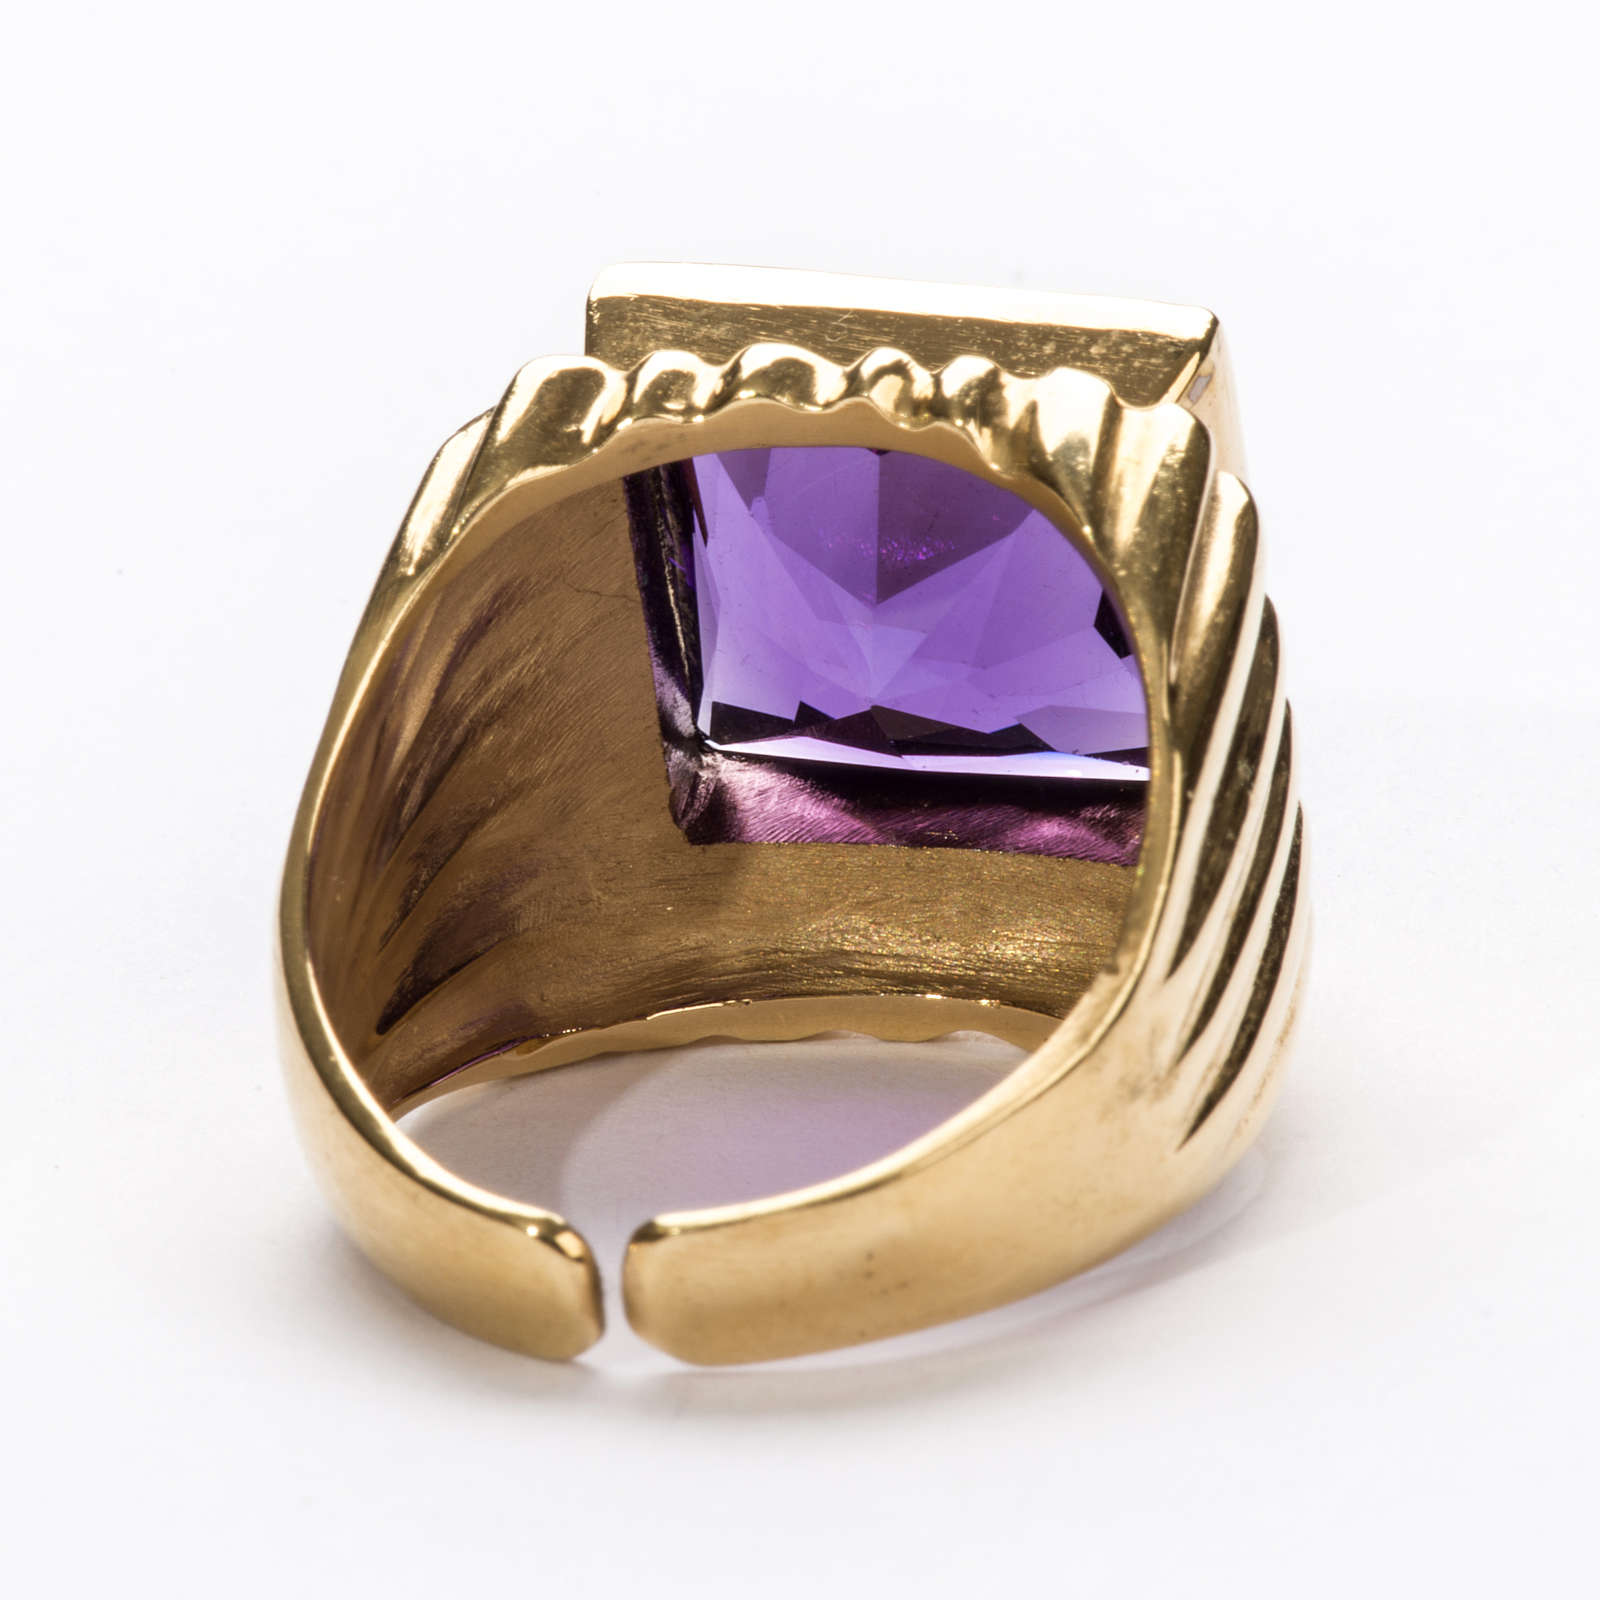 Bishop Ring in gold plated silver 925 with amethyst 3